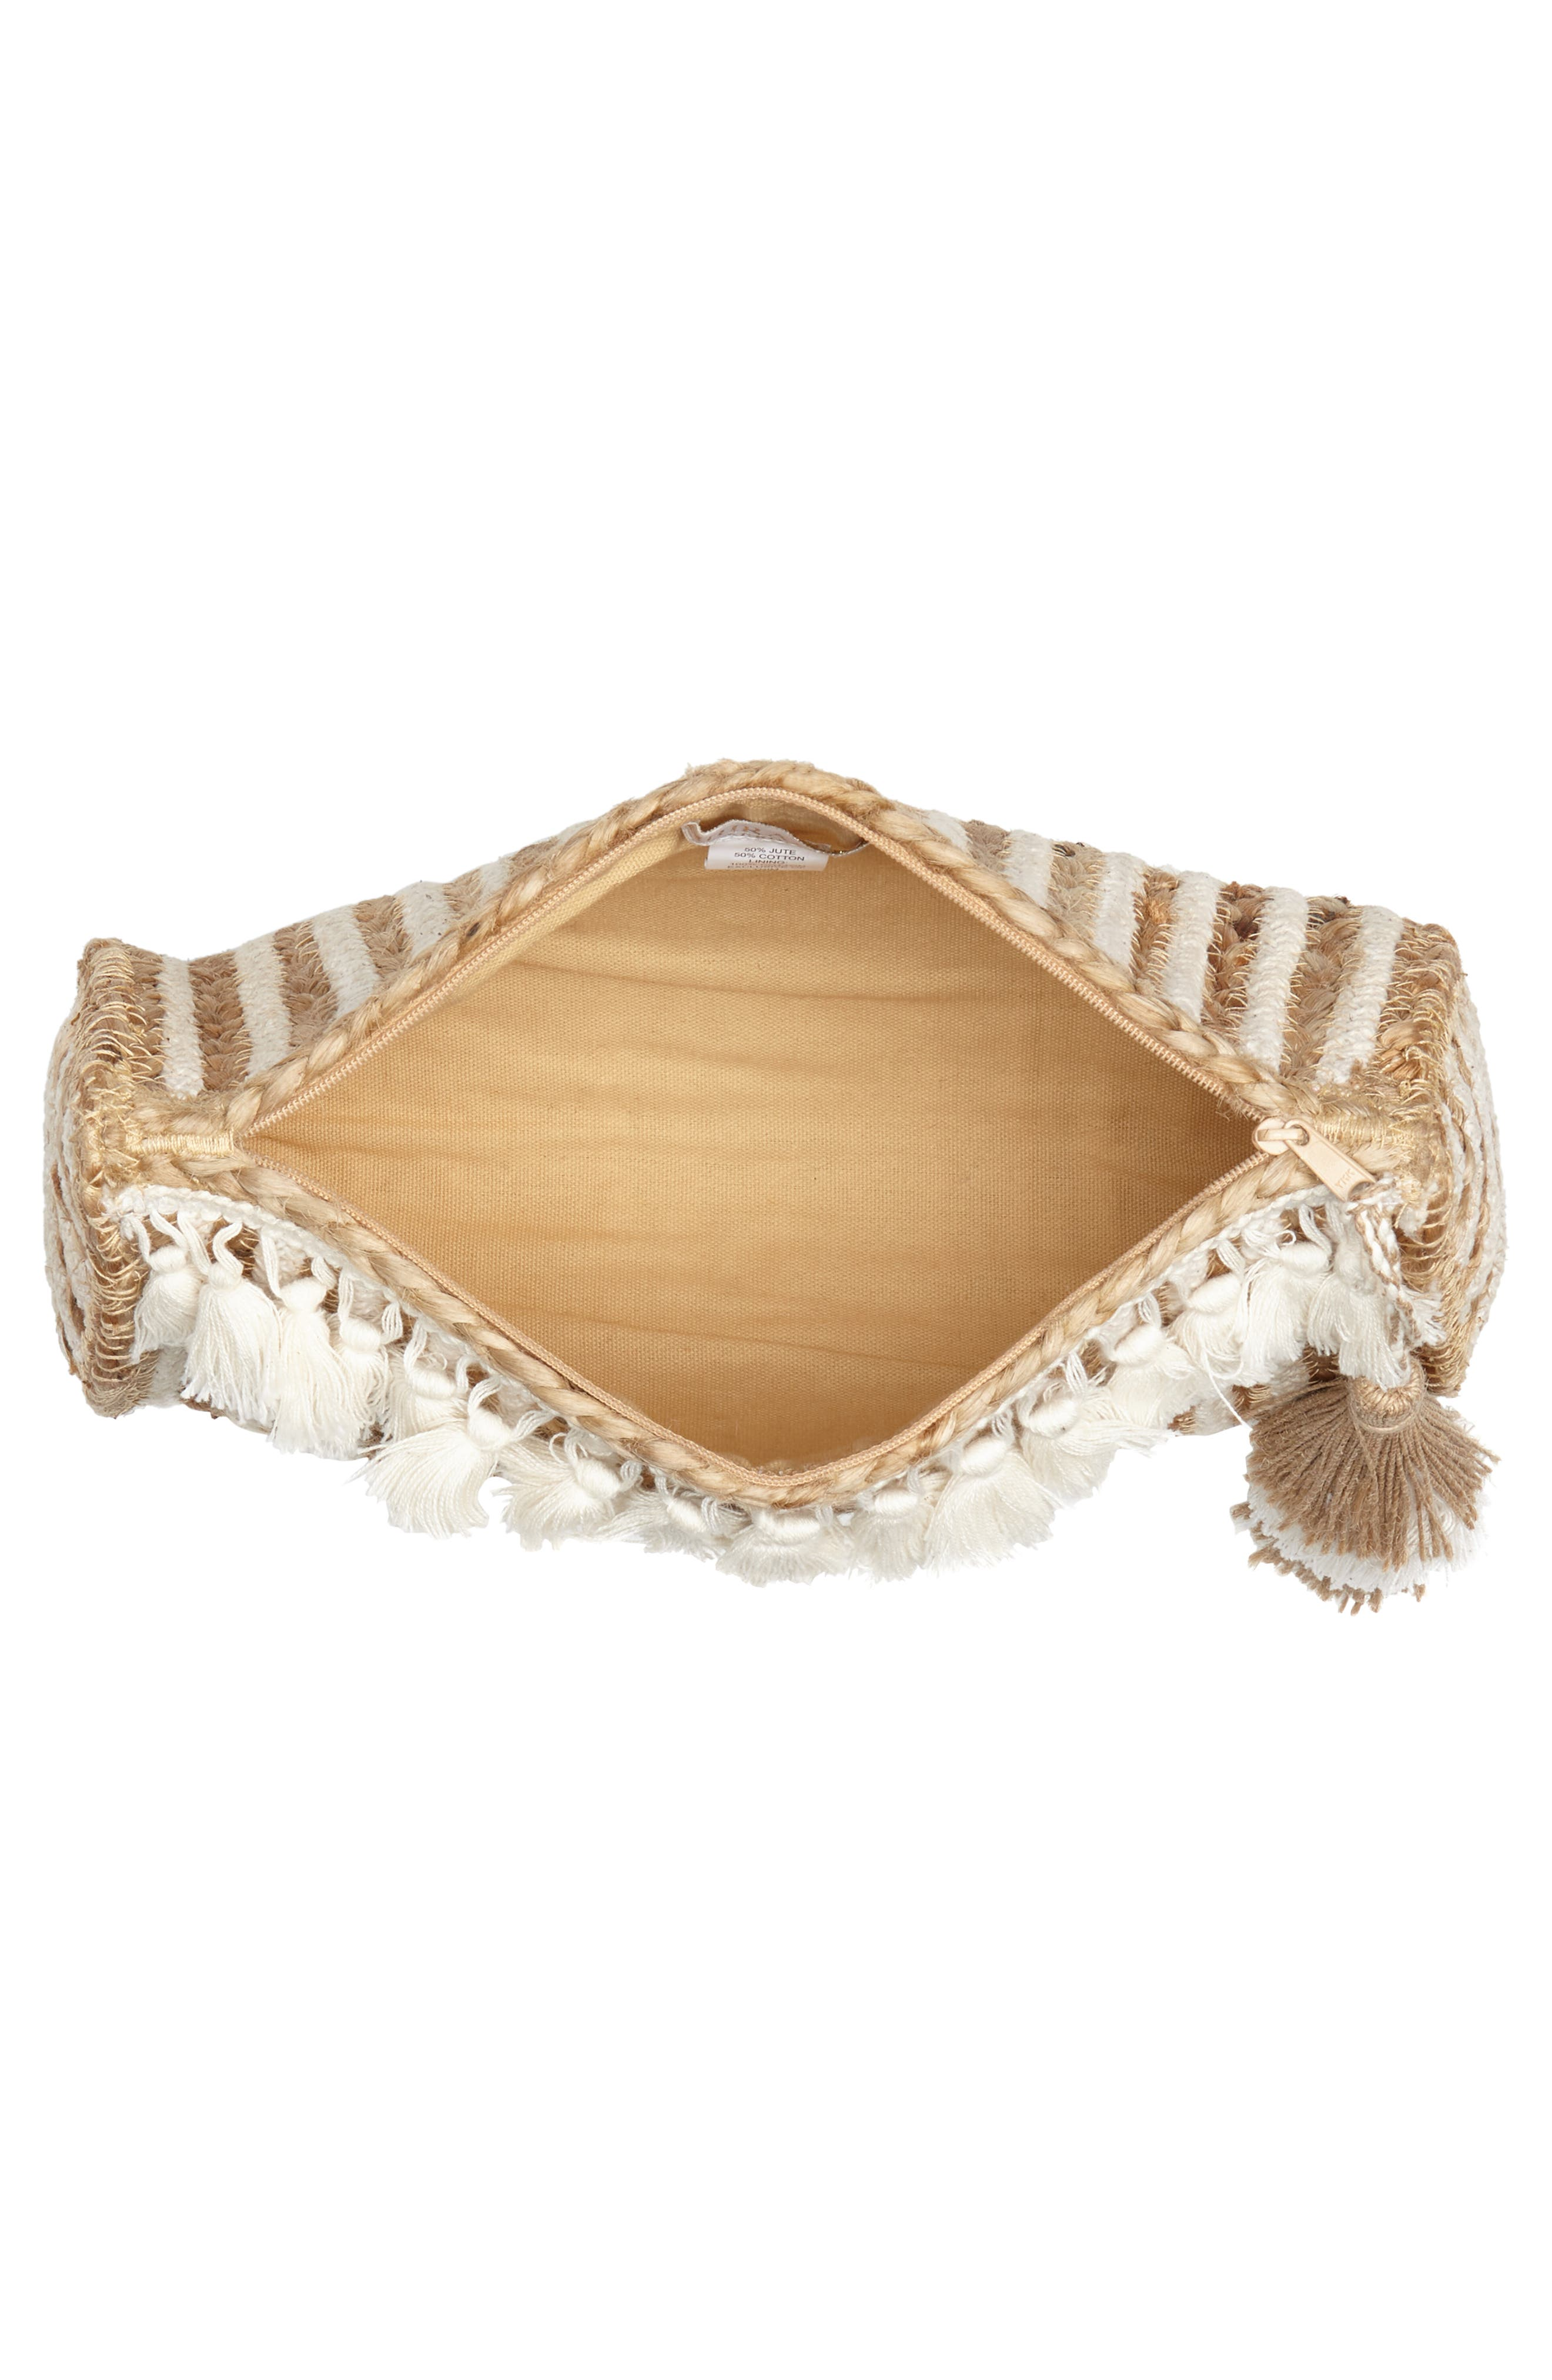 Mare Straw Clutch,                             Alternate thumbnail 4, color,